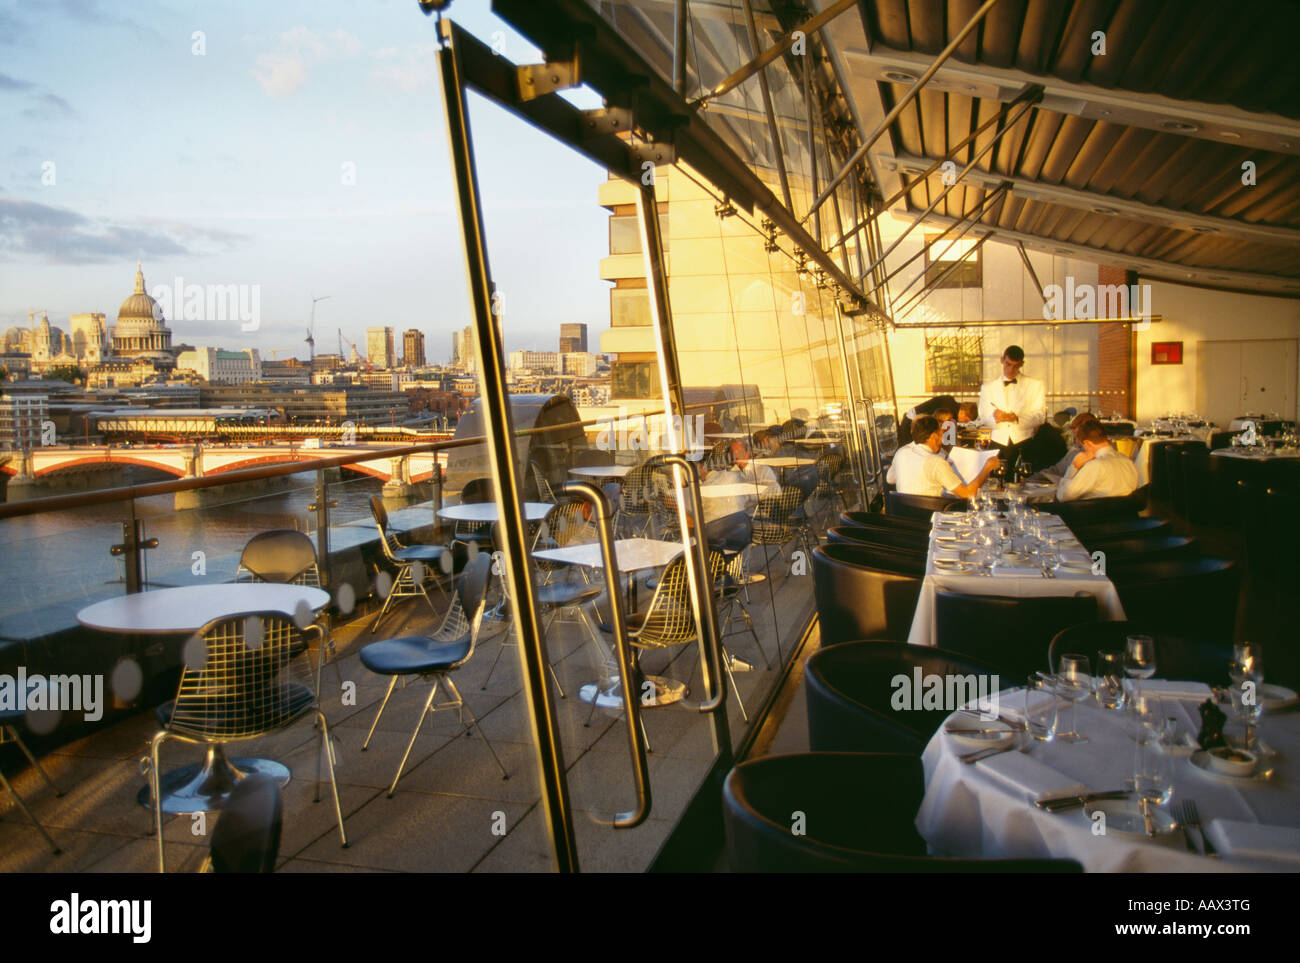 Oxo Tower Restaurant overlooking Thames River and London, England - Stock Image